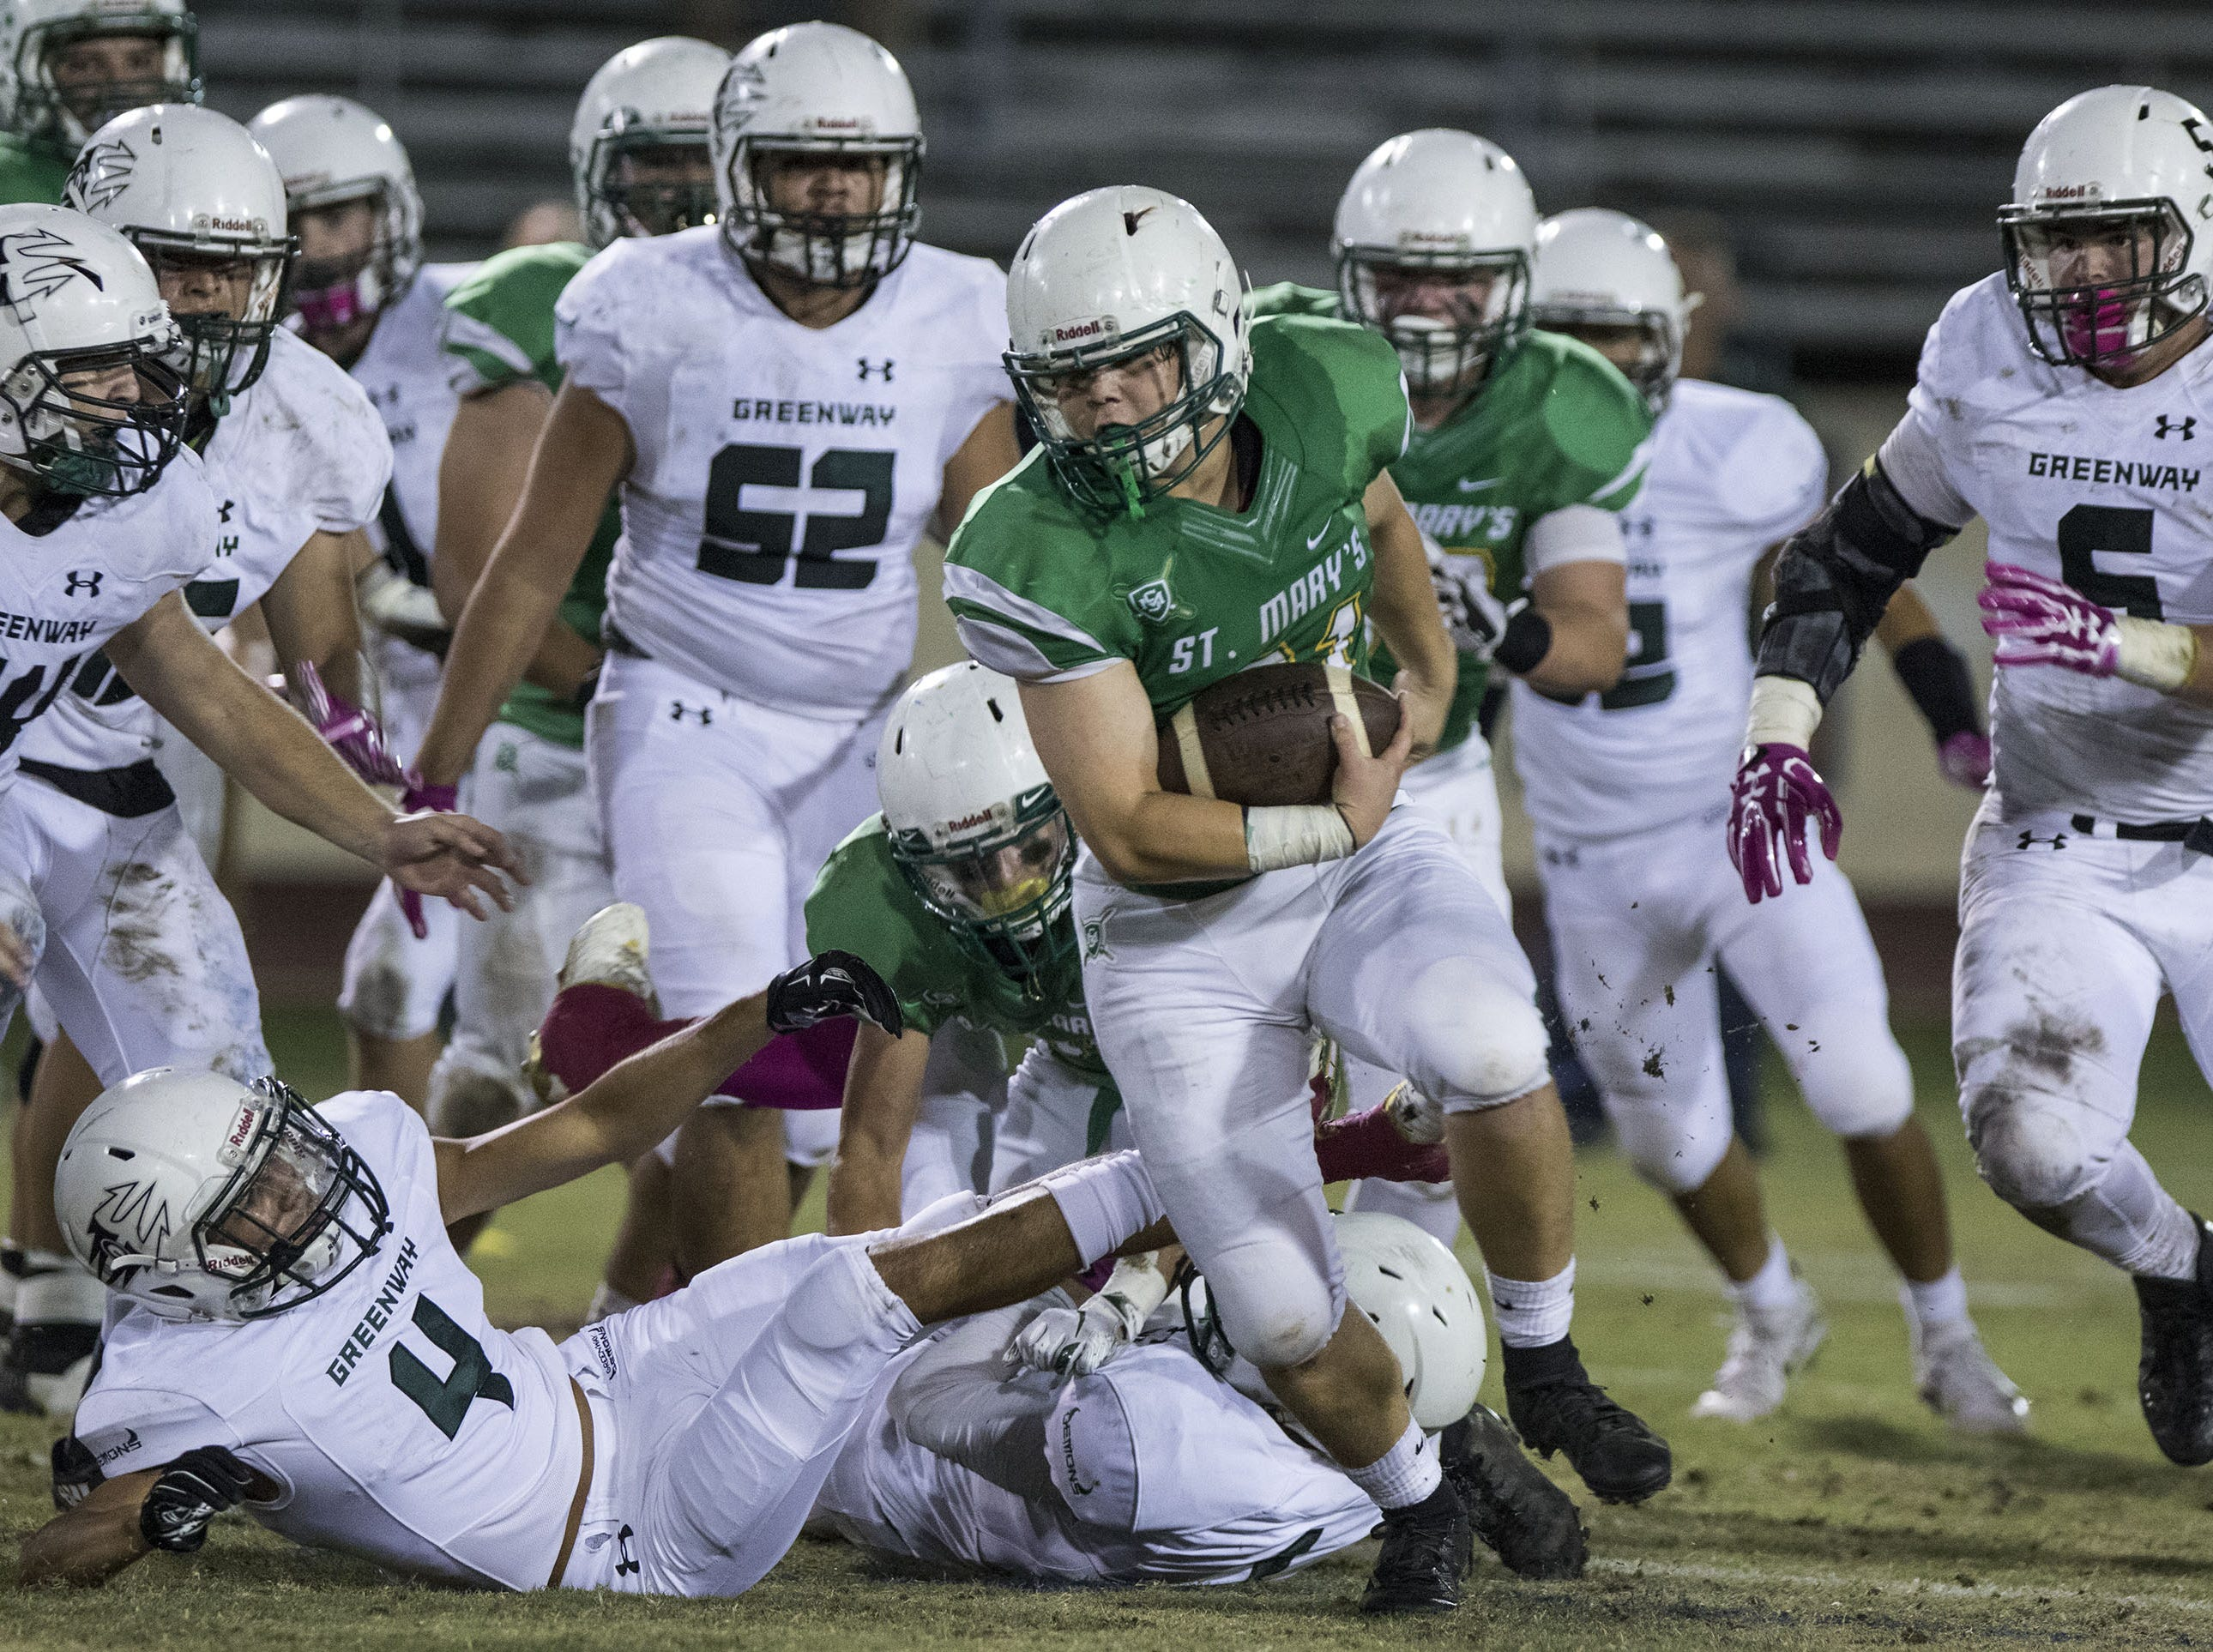 St. Mary's Adam Baratta gets a first down against Greenway during their game at Phoenix College in Phoenix Friday, Oct. 12, 2018. #azhsfb